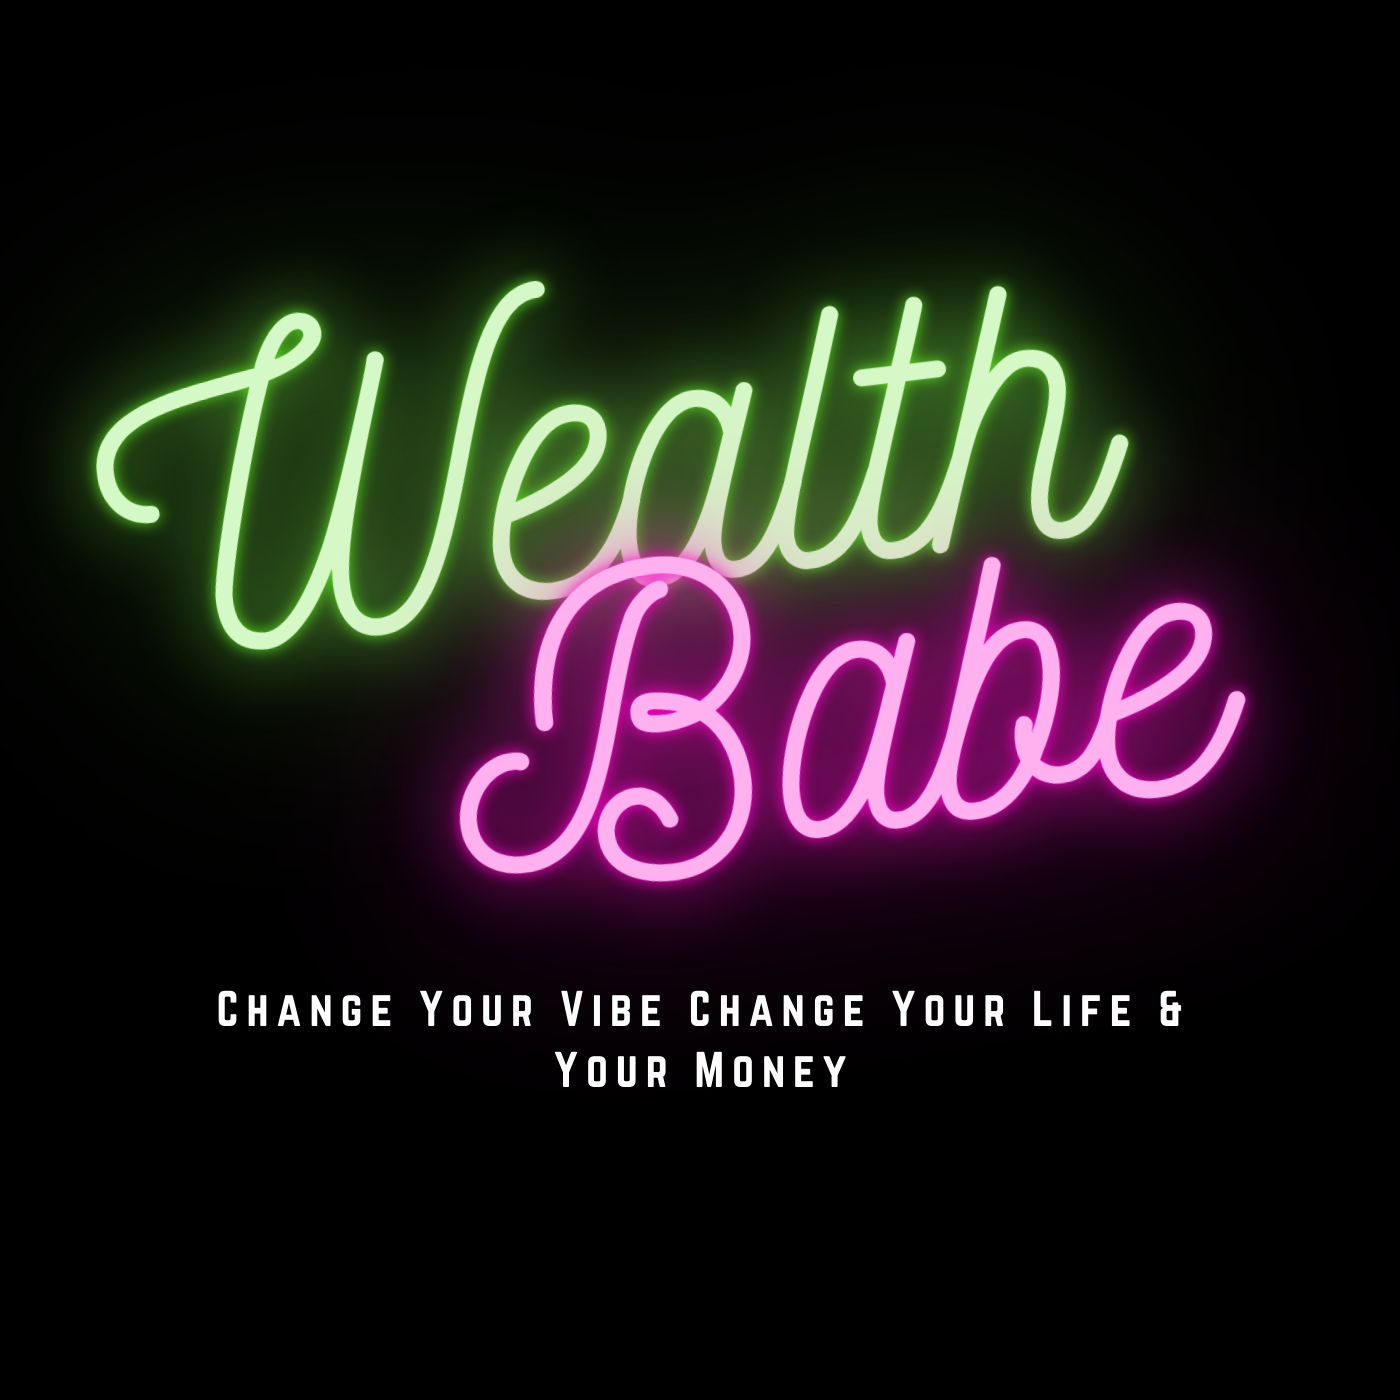 Wealth Babes Share What They Manifested with The Wealth Babe Experience